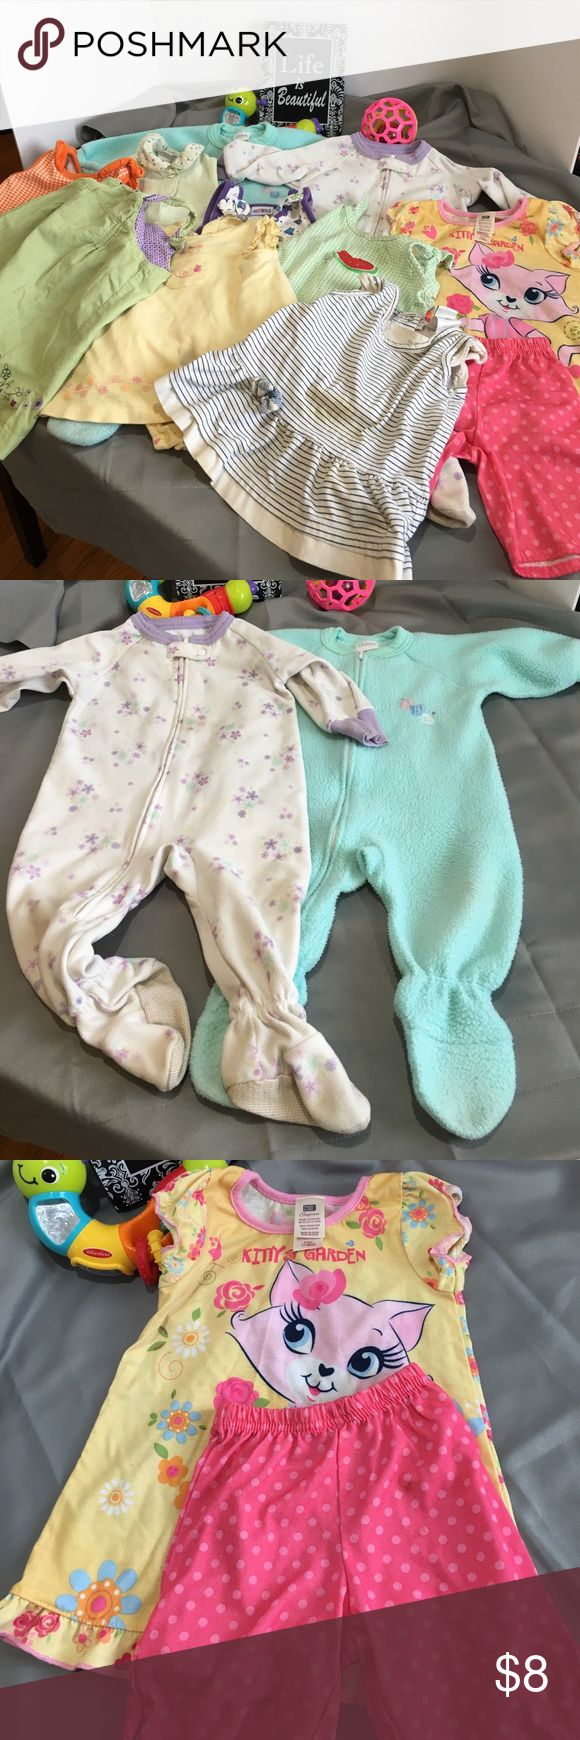 💰💰12 piece 12 month bundle with staining All items have stains. Blue footies have a very small stain on back. White footies have noticeable stains. Kitty pjs has pilling. Shorts have slightly noticeable stains. Mint green 2pc has light stain. Orange outfit has staining. Yellow outfit has dark stain. Watermelon outfit has light stains. Purple and white outfit has stains on back. Blue and white dress has dark stain on front. Mint green dress has looks like ink stains, small on front. Please…